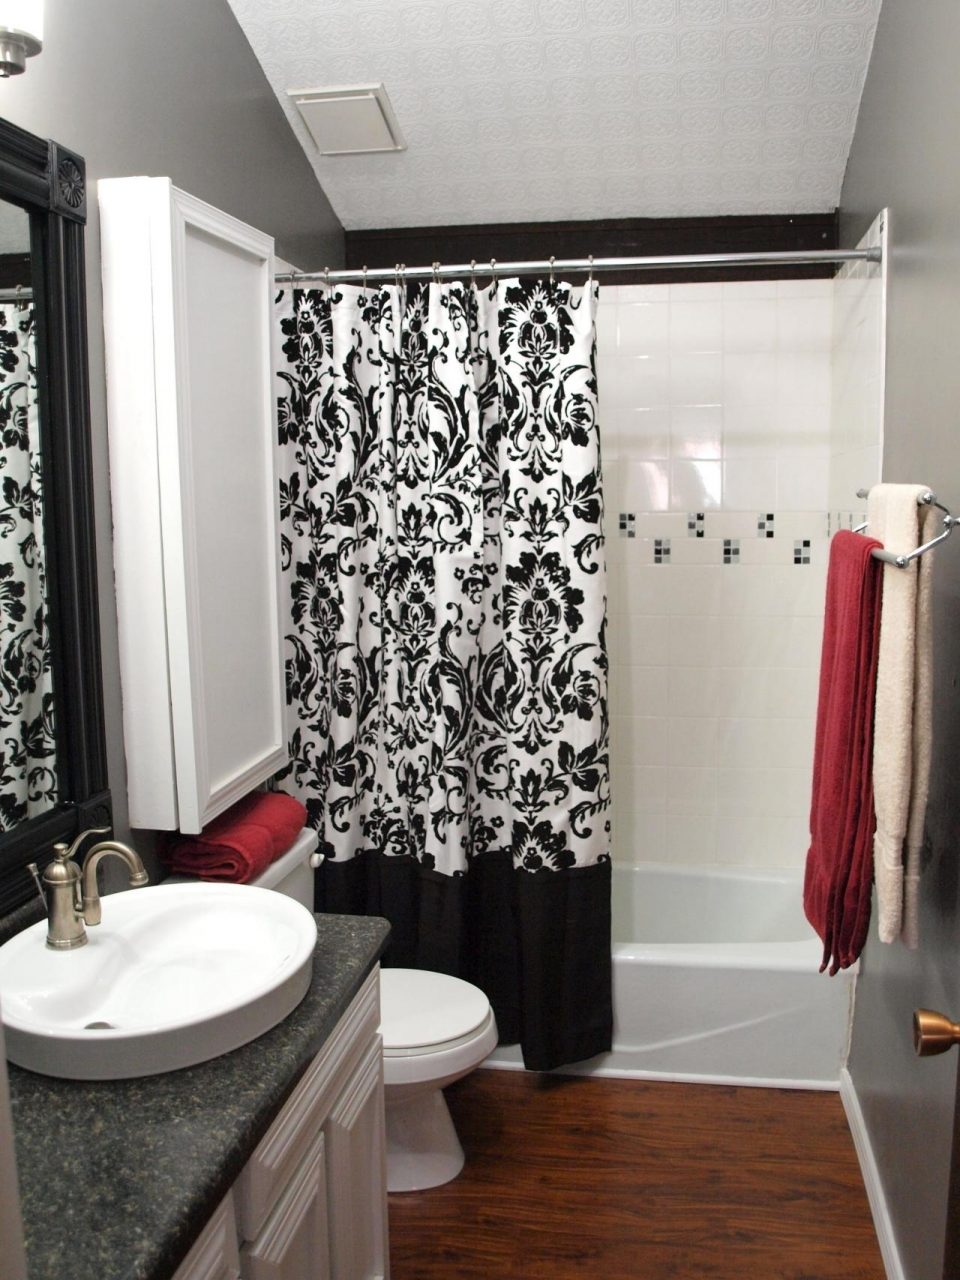 Enchanting Black White And Red Bathroom Decorating Ideas Decor At